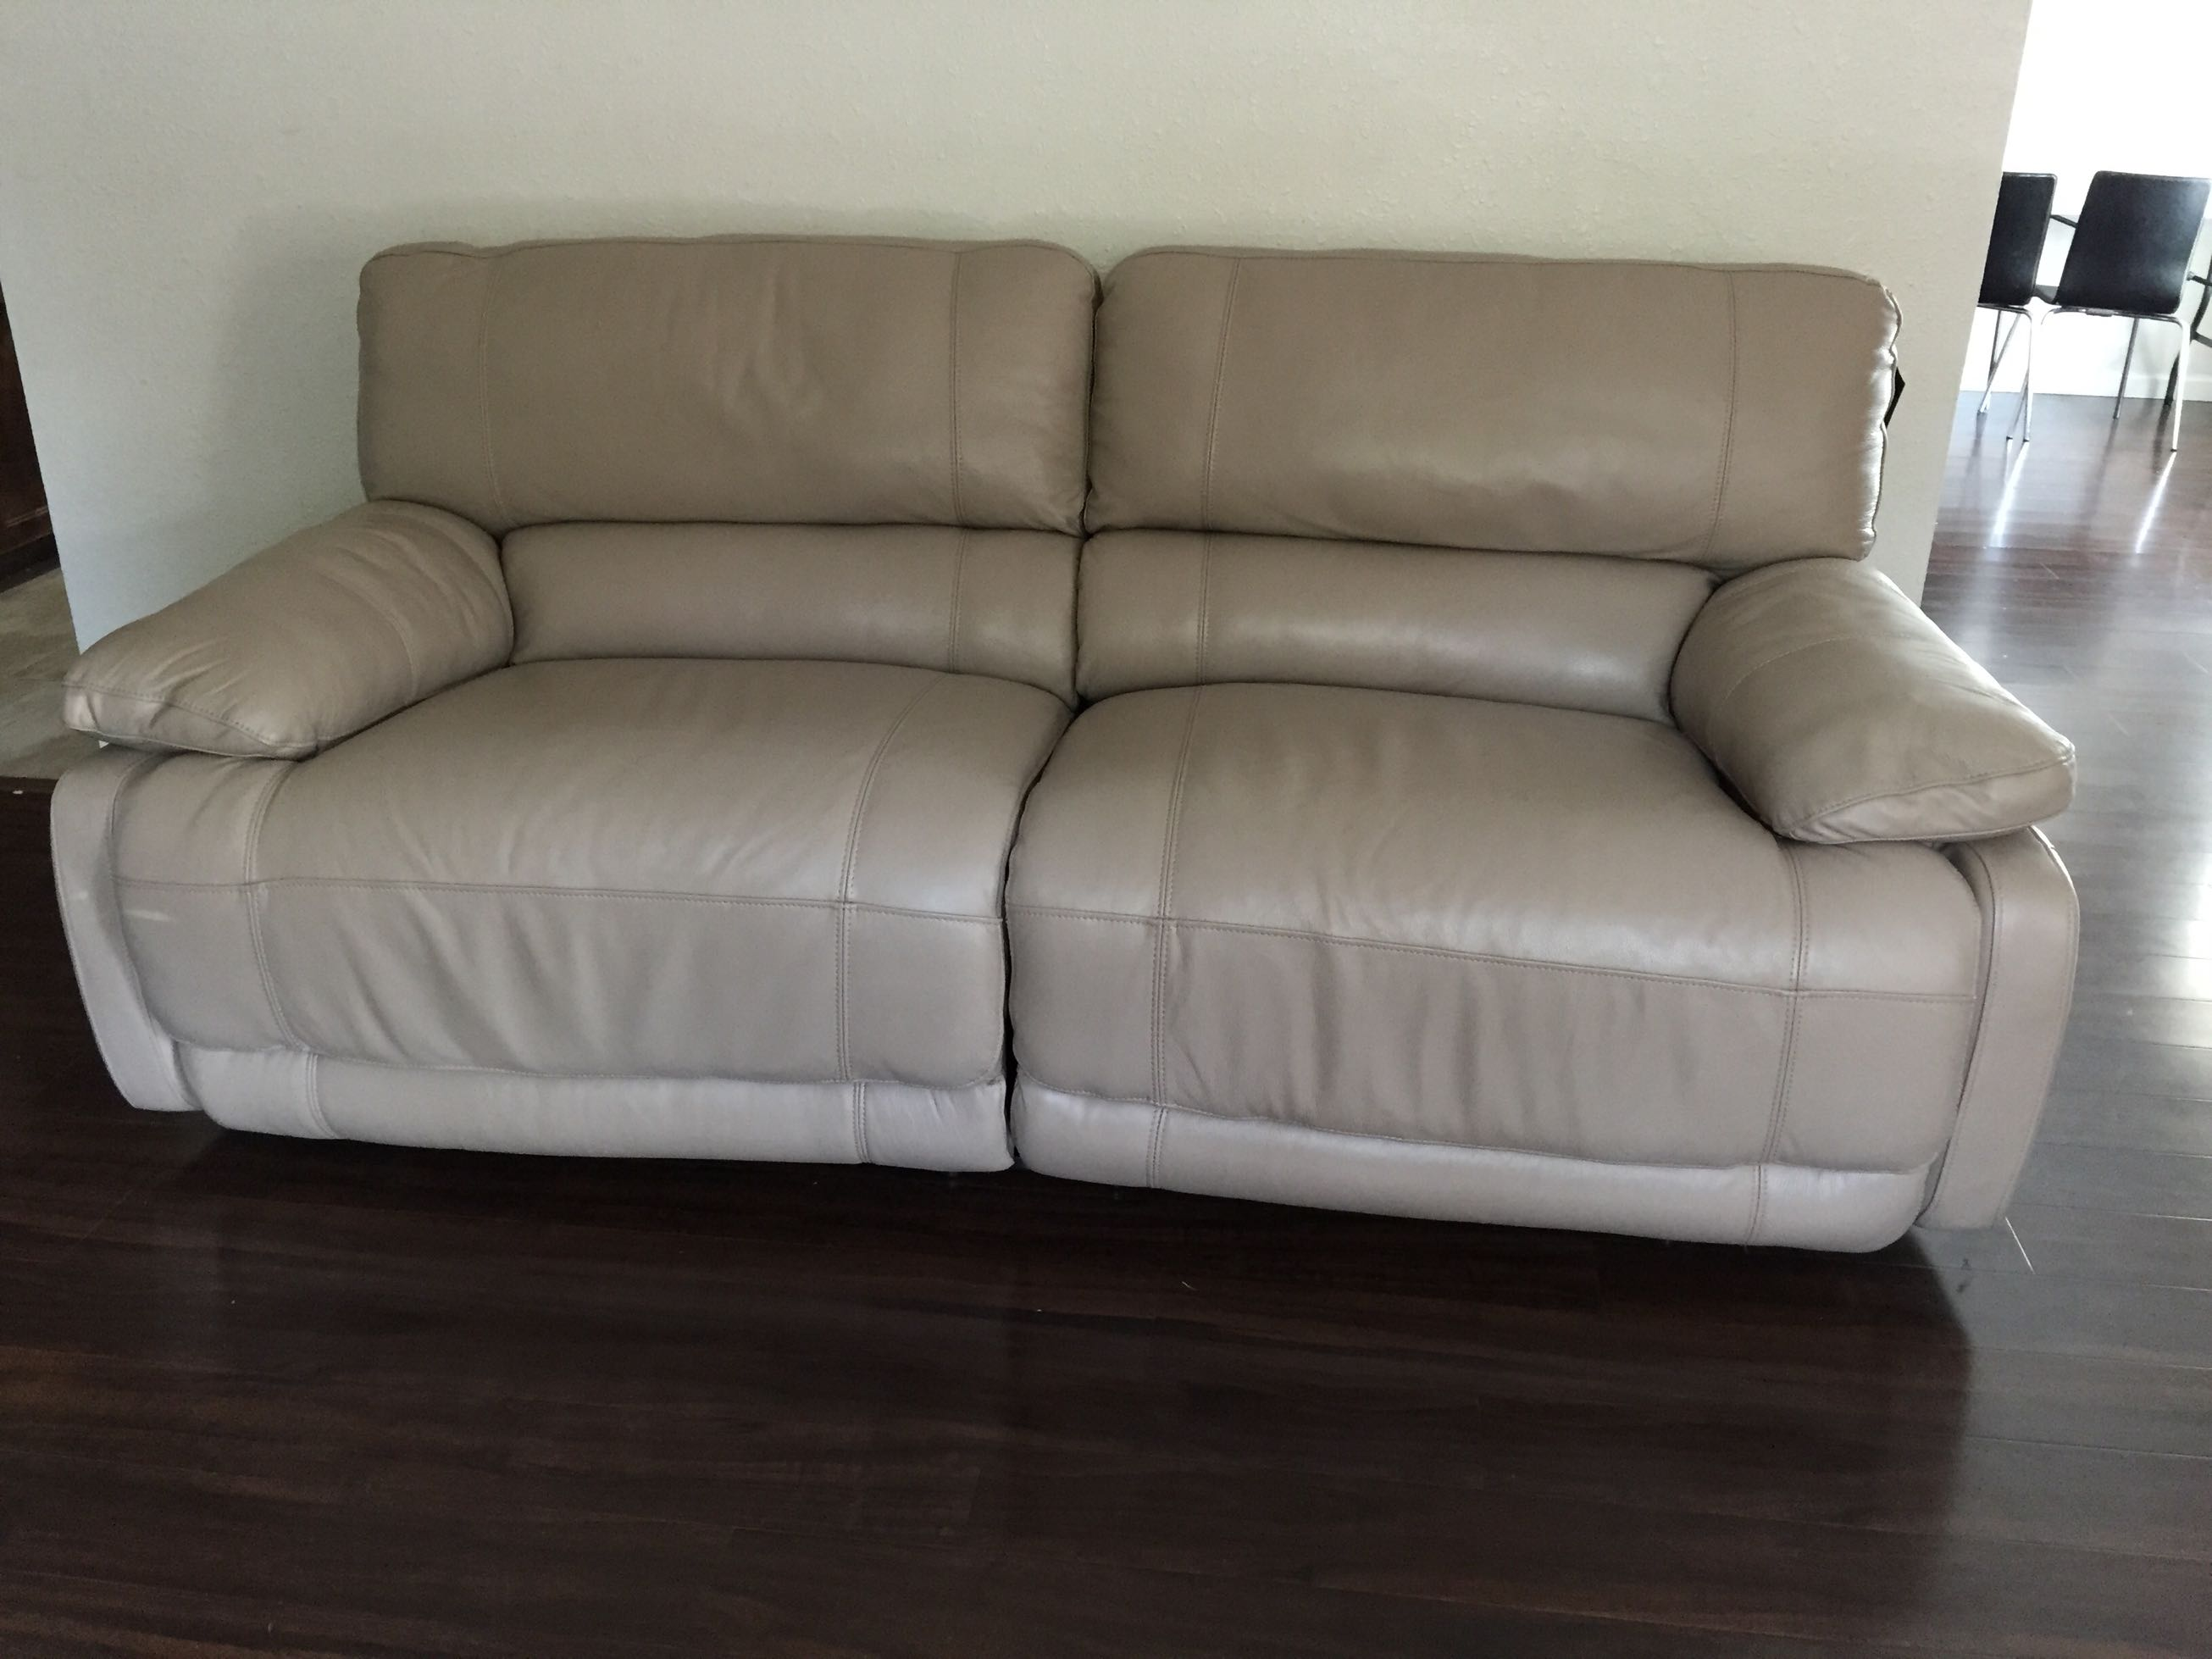 Living Room Brand New Set 100 Leather For Sale In Dallas Tx 5miles Buy And Sell